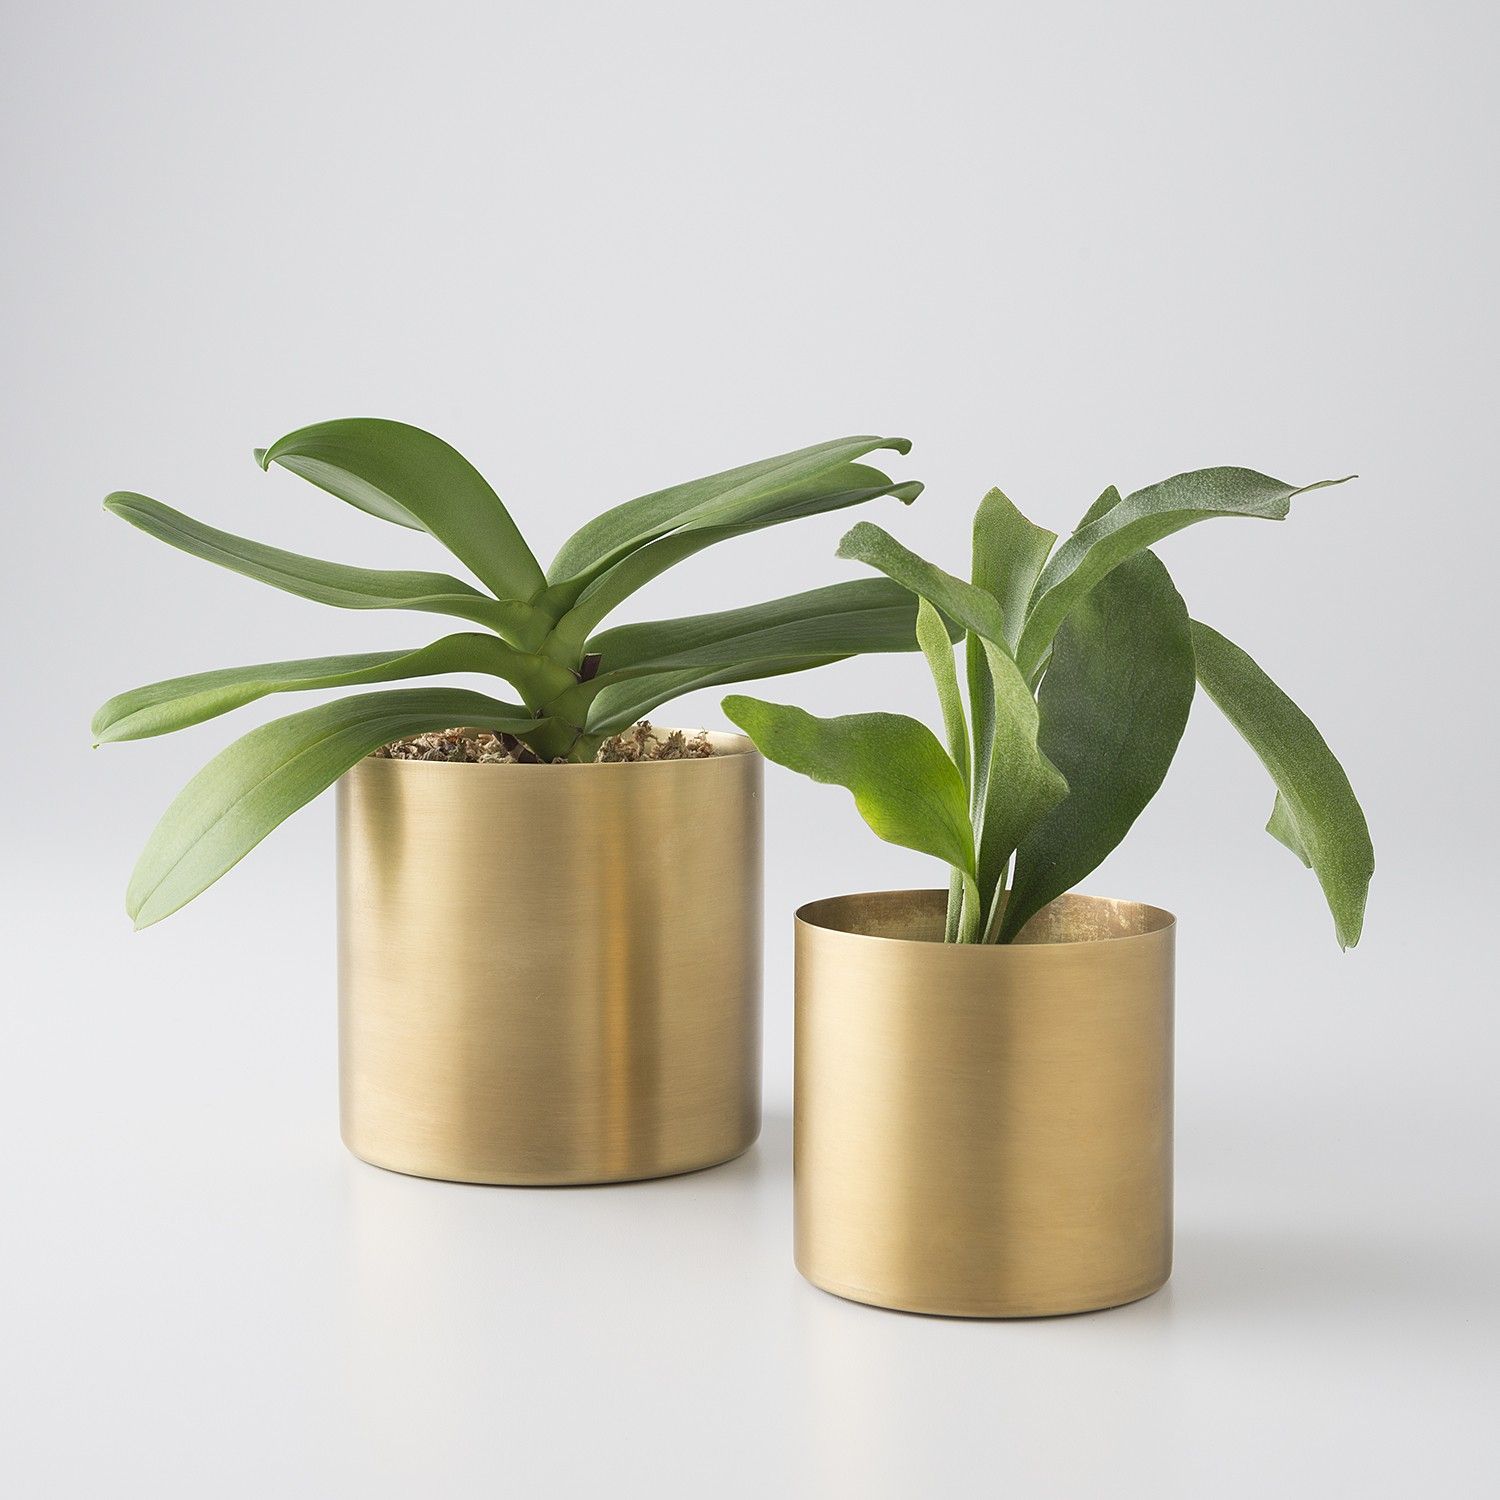 Brass Planter Planters Plants And Schoolhouse Electric